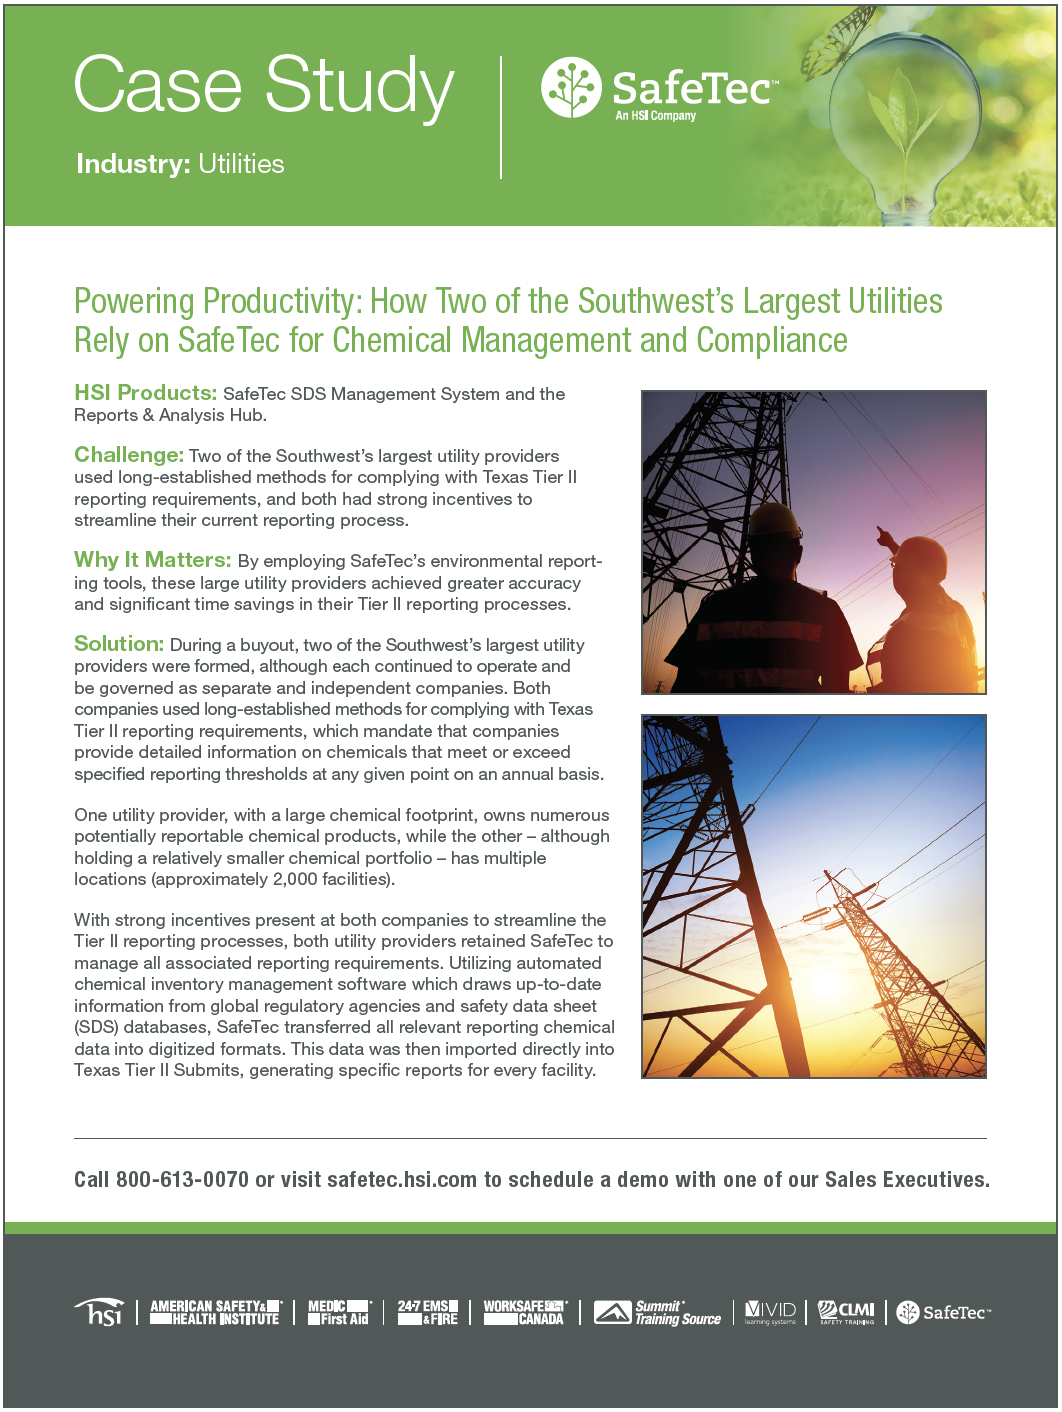 SafeTec Case Study - Southwest Utilities Provider.jpg